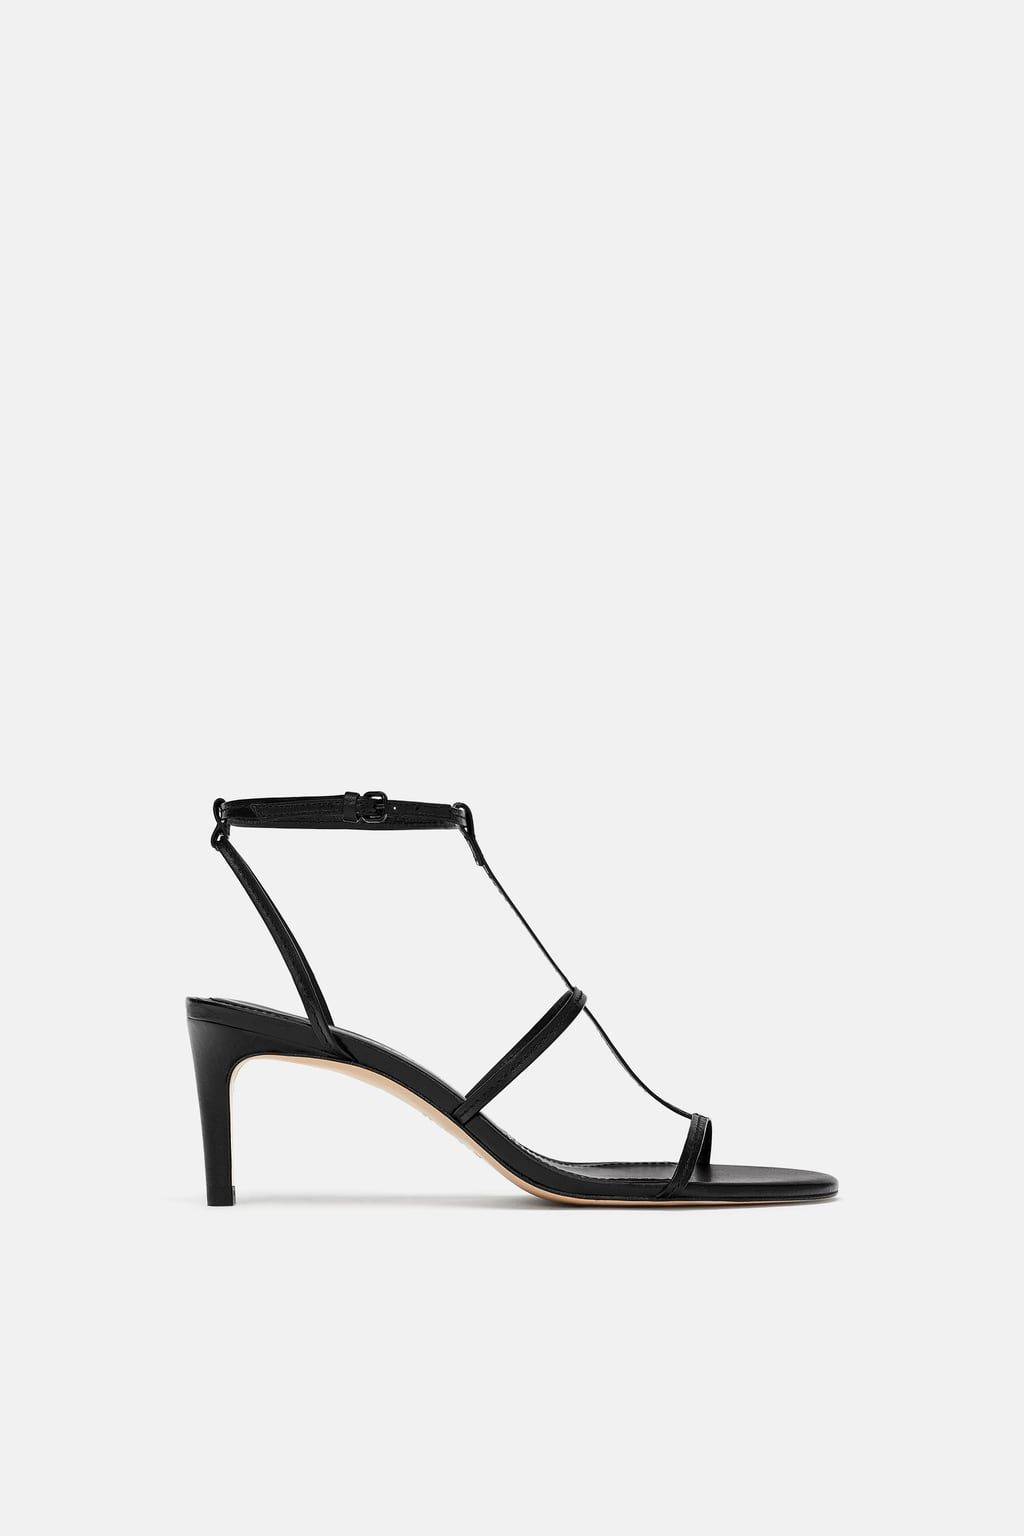 047be0646f5 Image 2 of LEATHER HIGH HEELED STRAPPY SANDALS from Zara